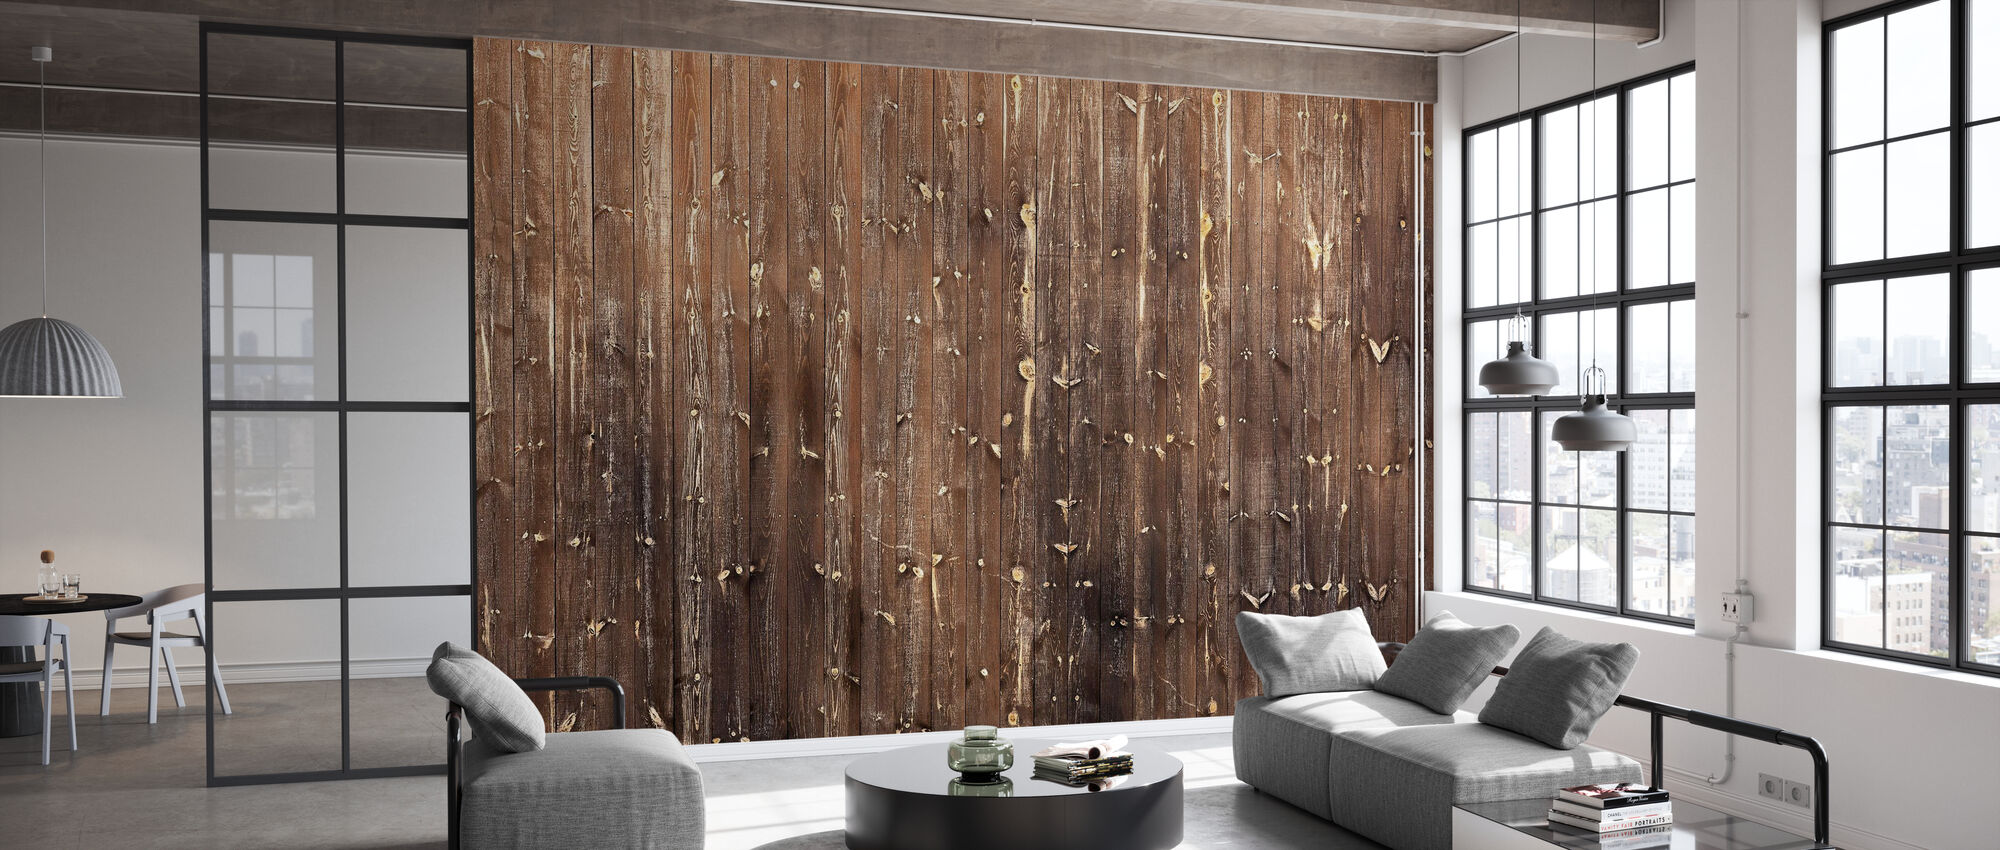 Brown Wooden Wall - Wallpaper - Office